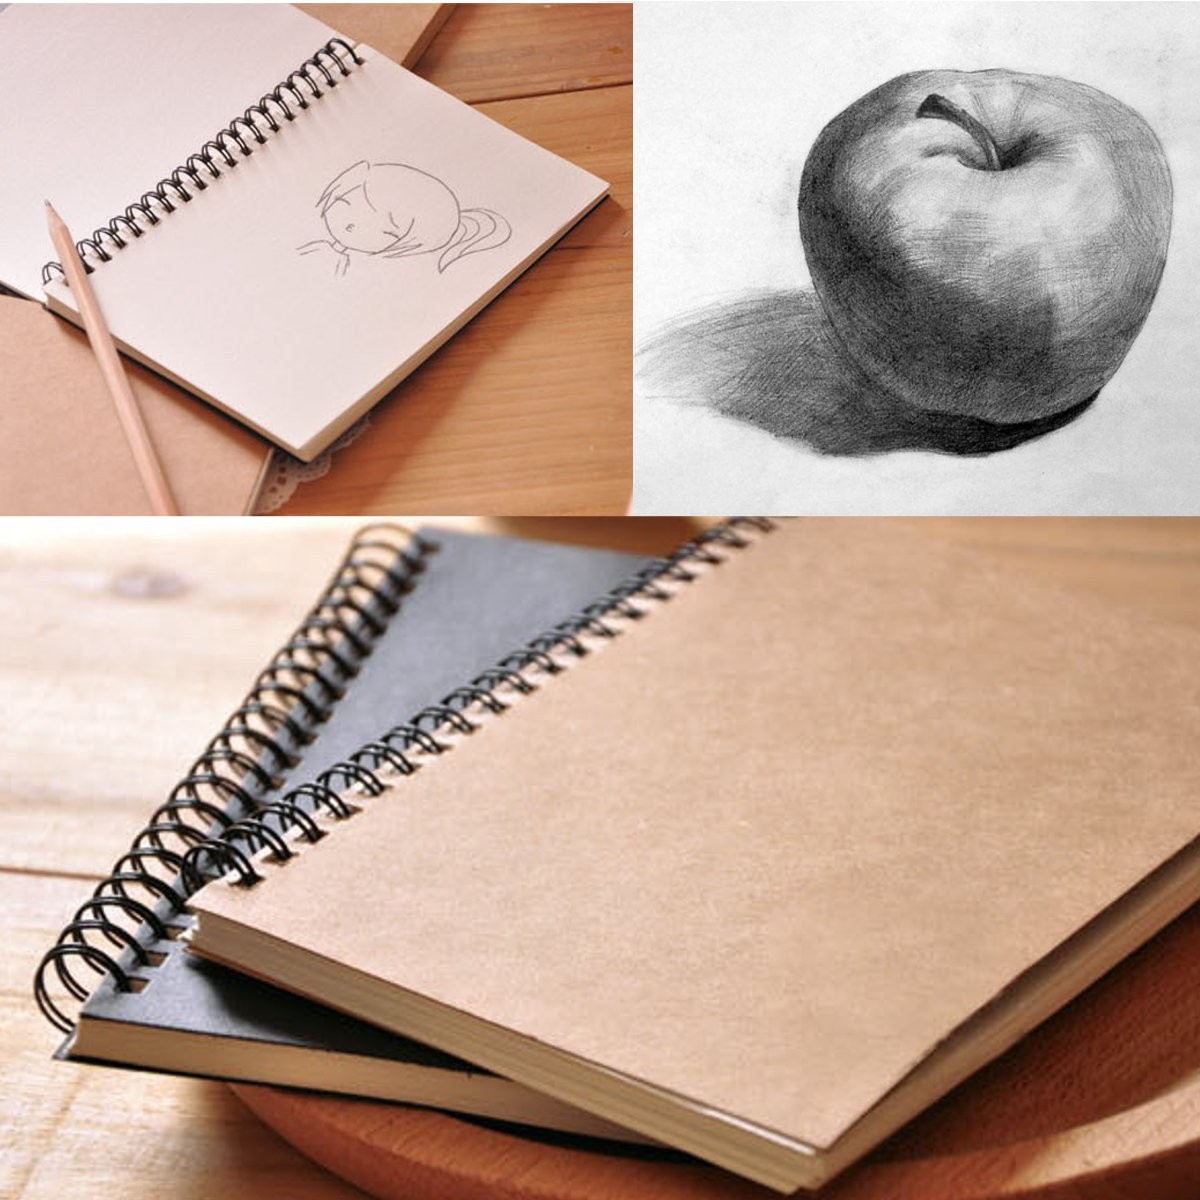 100 Sheets 12X18cm Sketchbook Diary Drawing Painting Graffiti Small Soft Cover Blank Paper Notebook Memo School Office Supplies